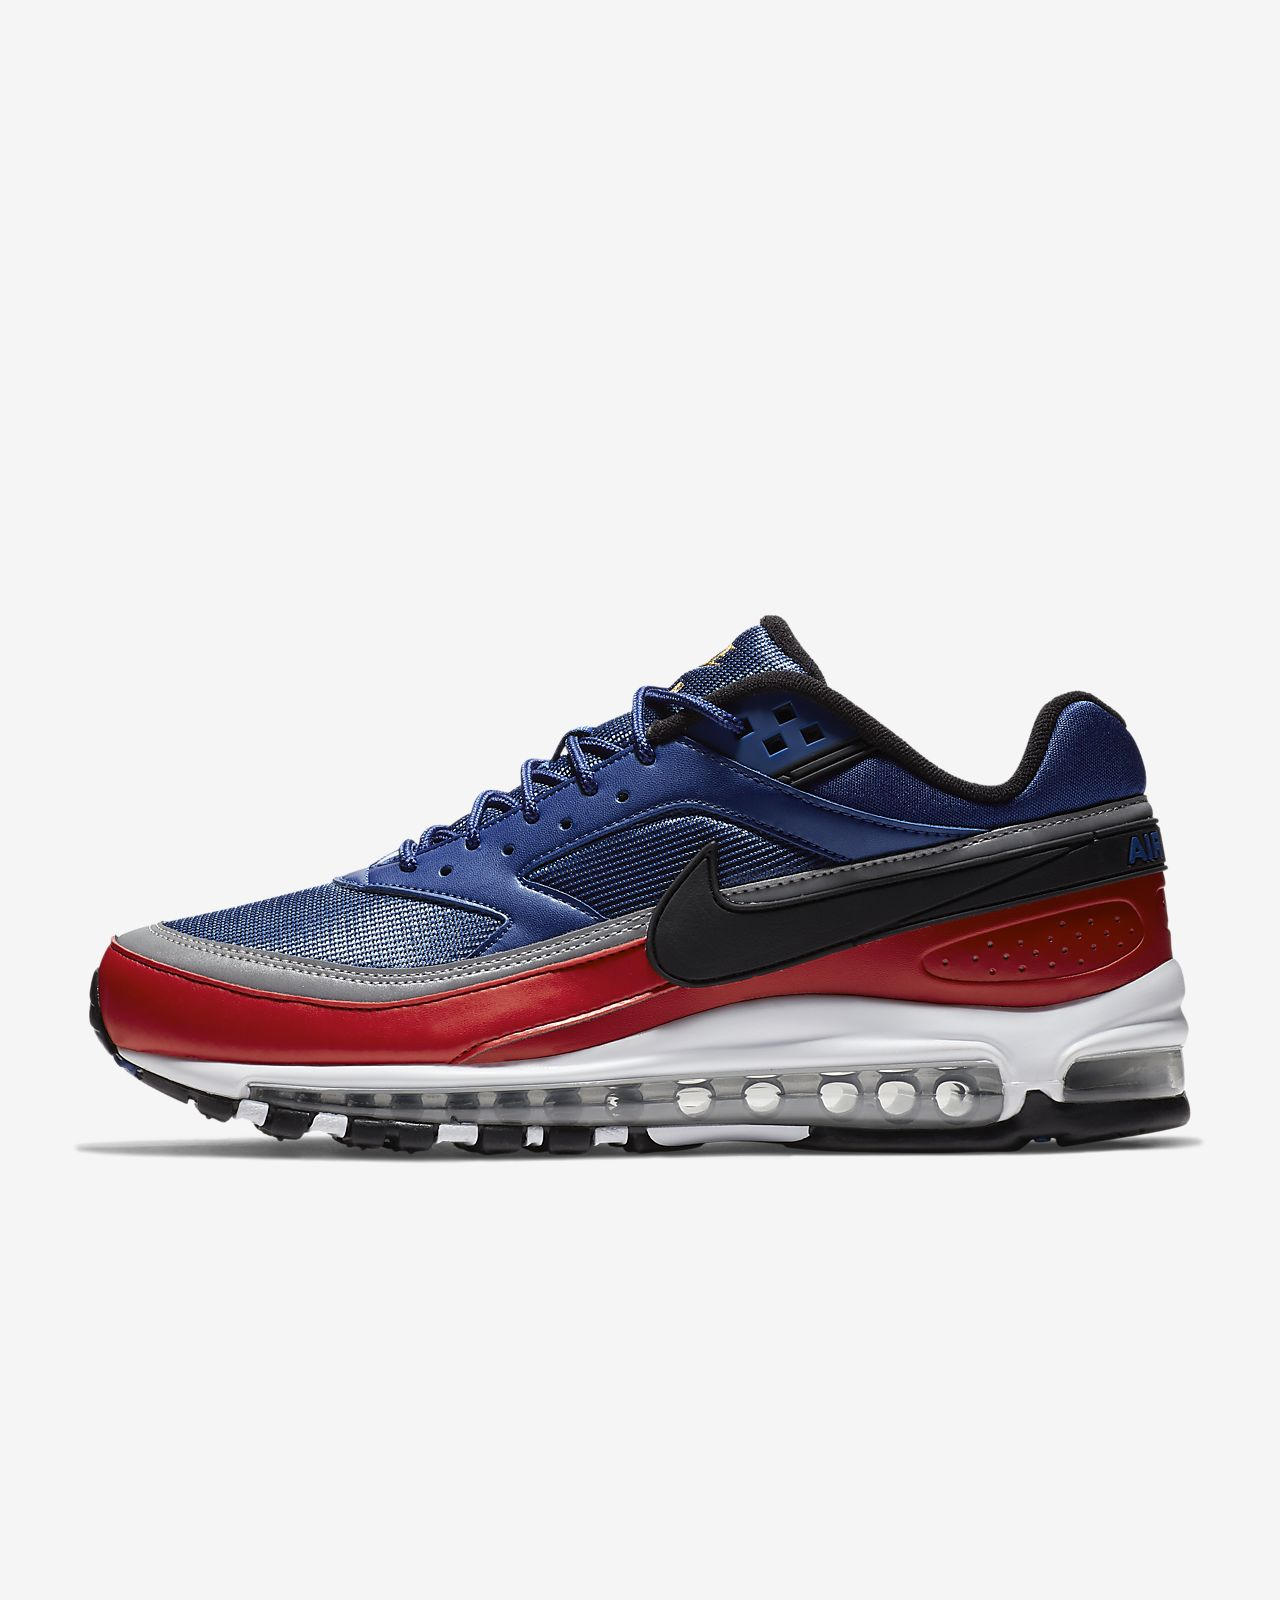 best sneakers 4a36f 29927 ... Chaussure Nike Air Max 97 BW pour Homme